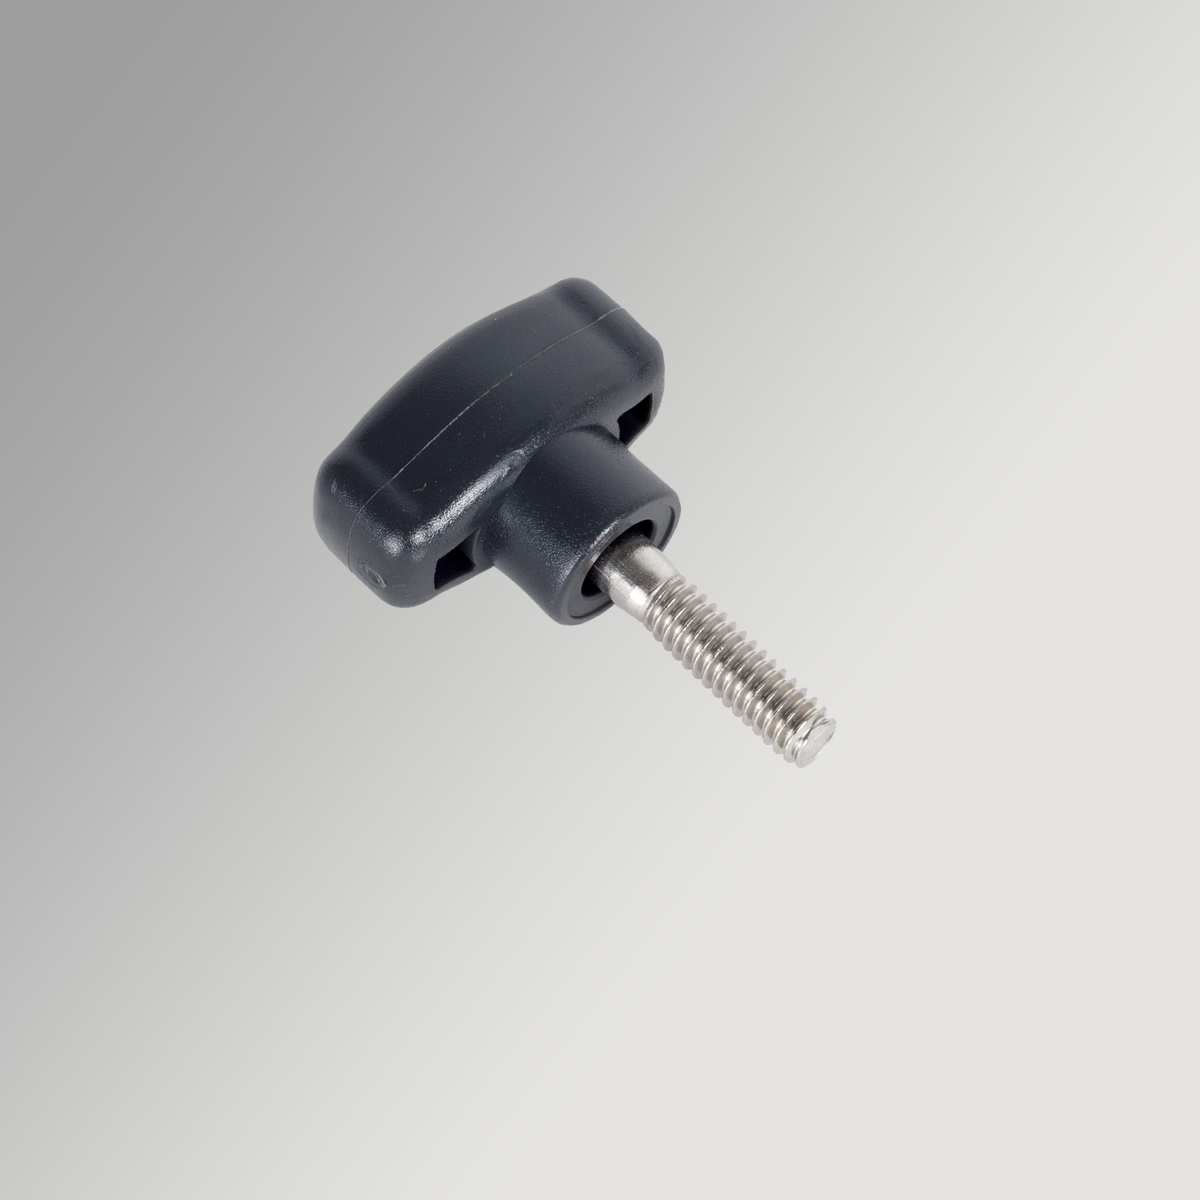 Thumb Screw for Knuckle & Deck Mounts